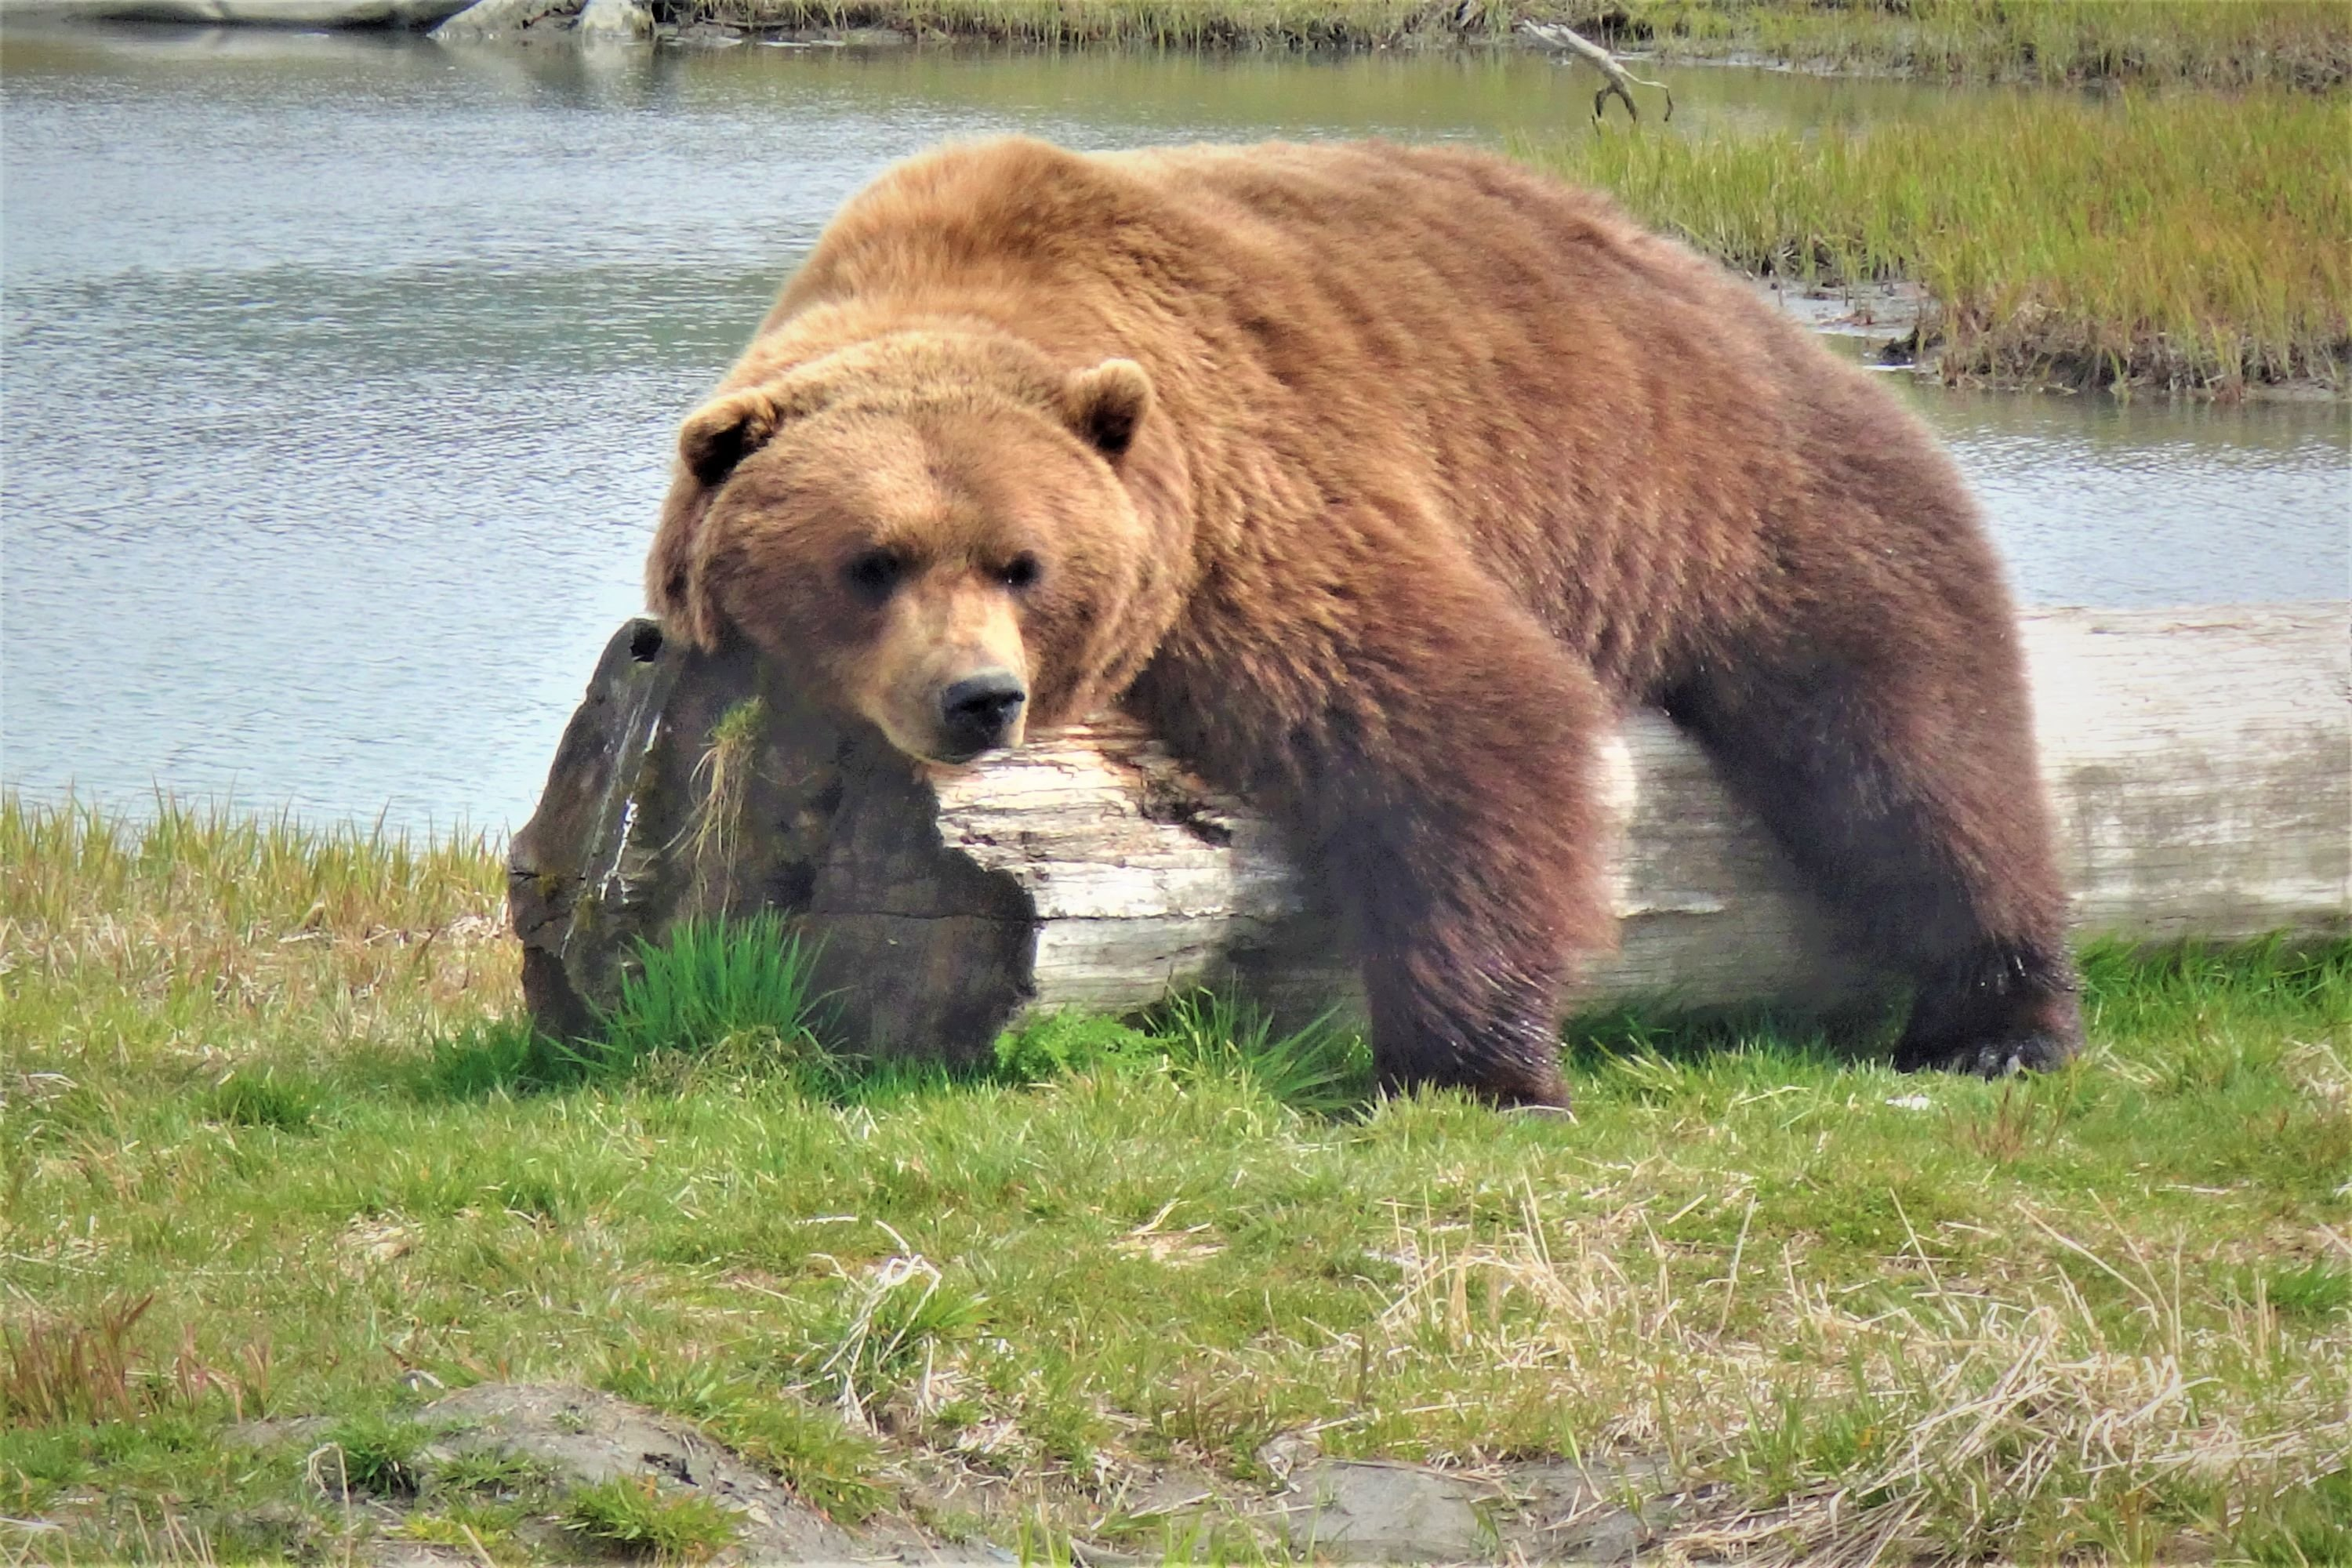 Majestic grizzly and black bears in Alaska example image 1